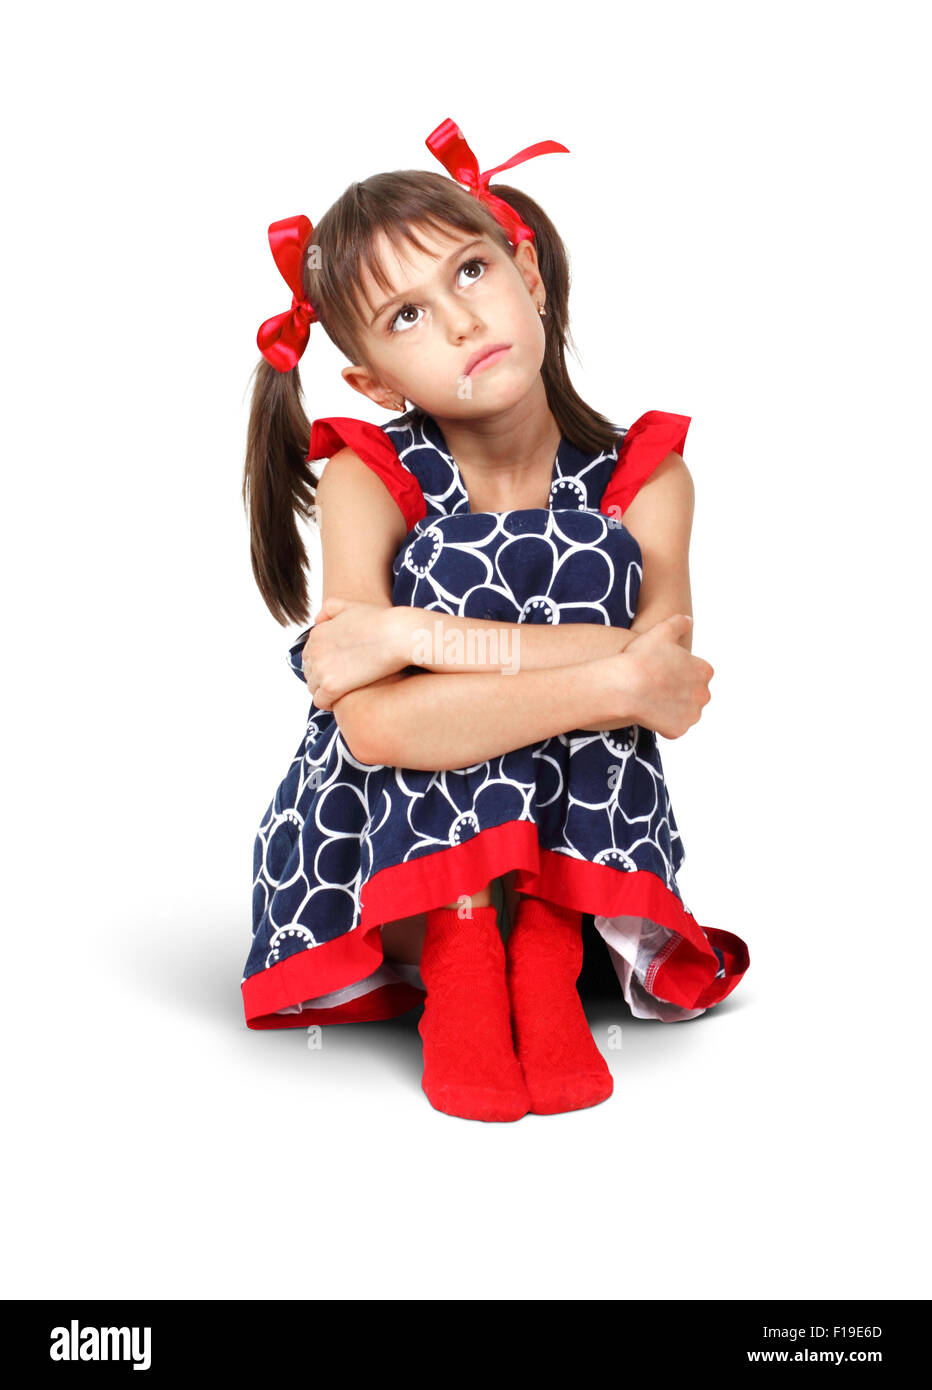 Sitting sad, thoughtful child girl with red bows, on white - Stock Image